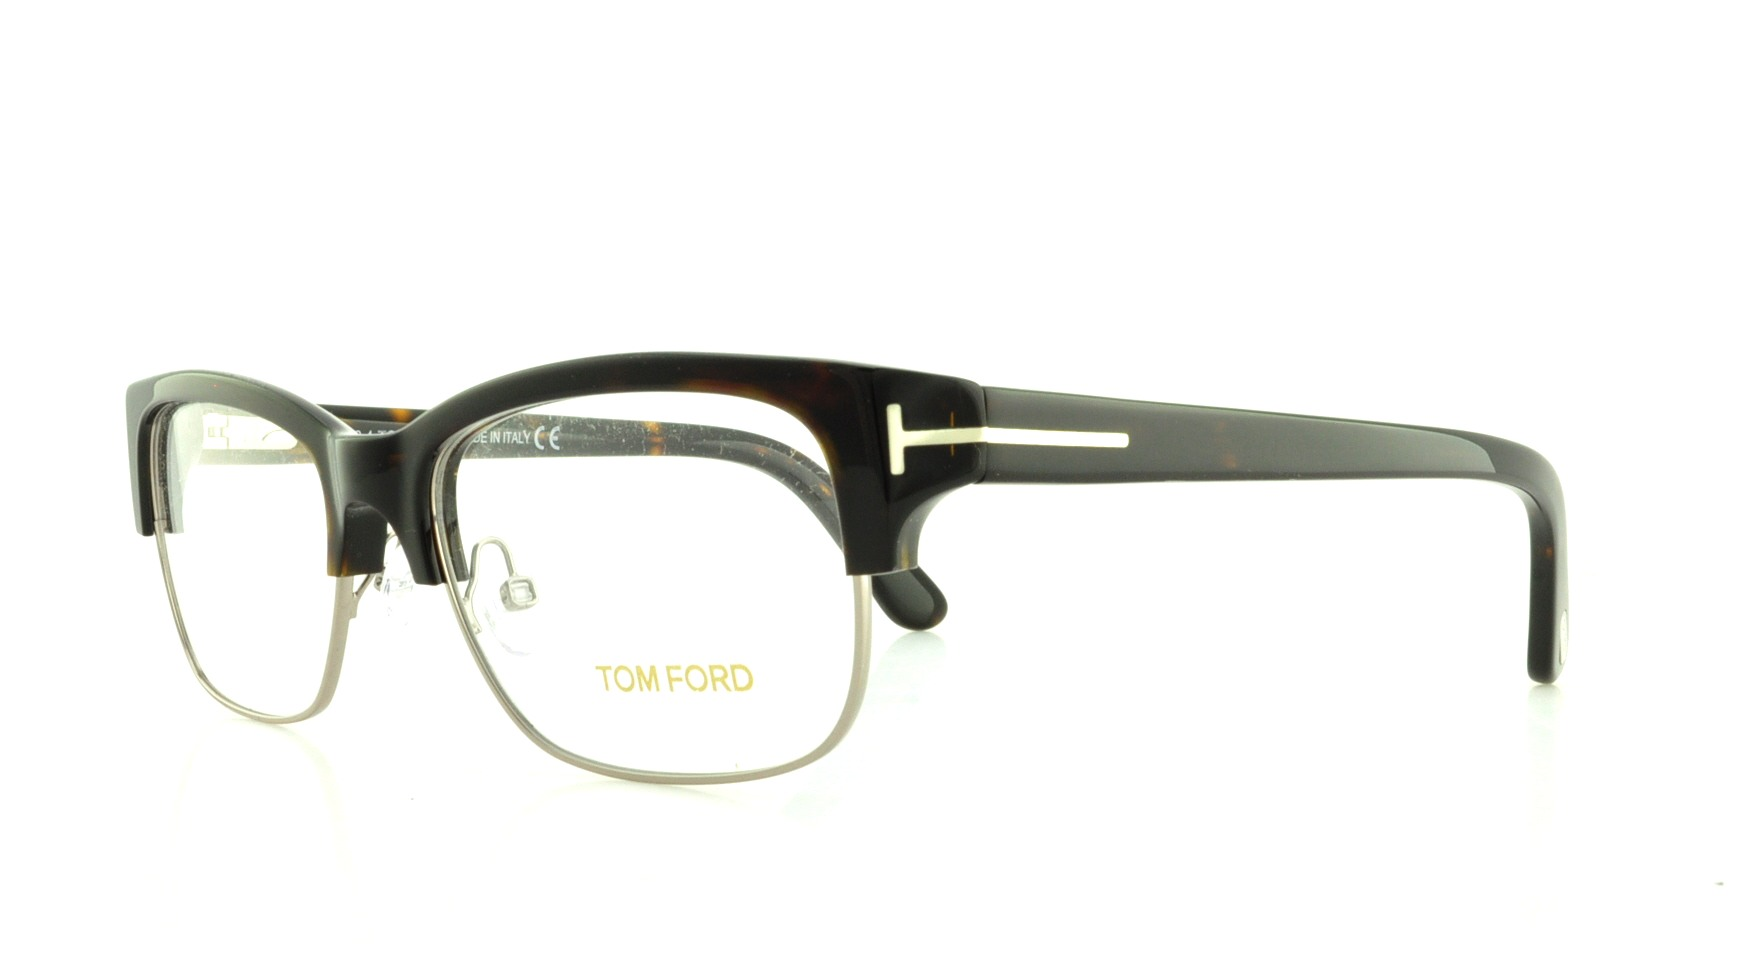 845f5a07c5 Designer Frames Outlet. Tom Ford FT5307